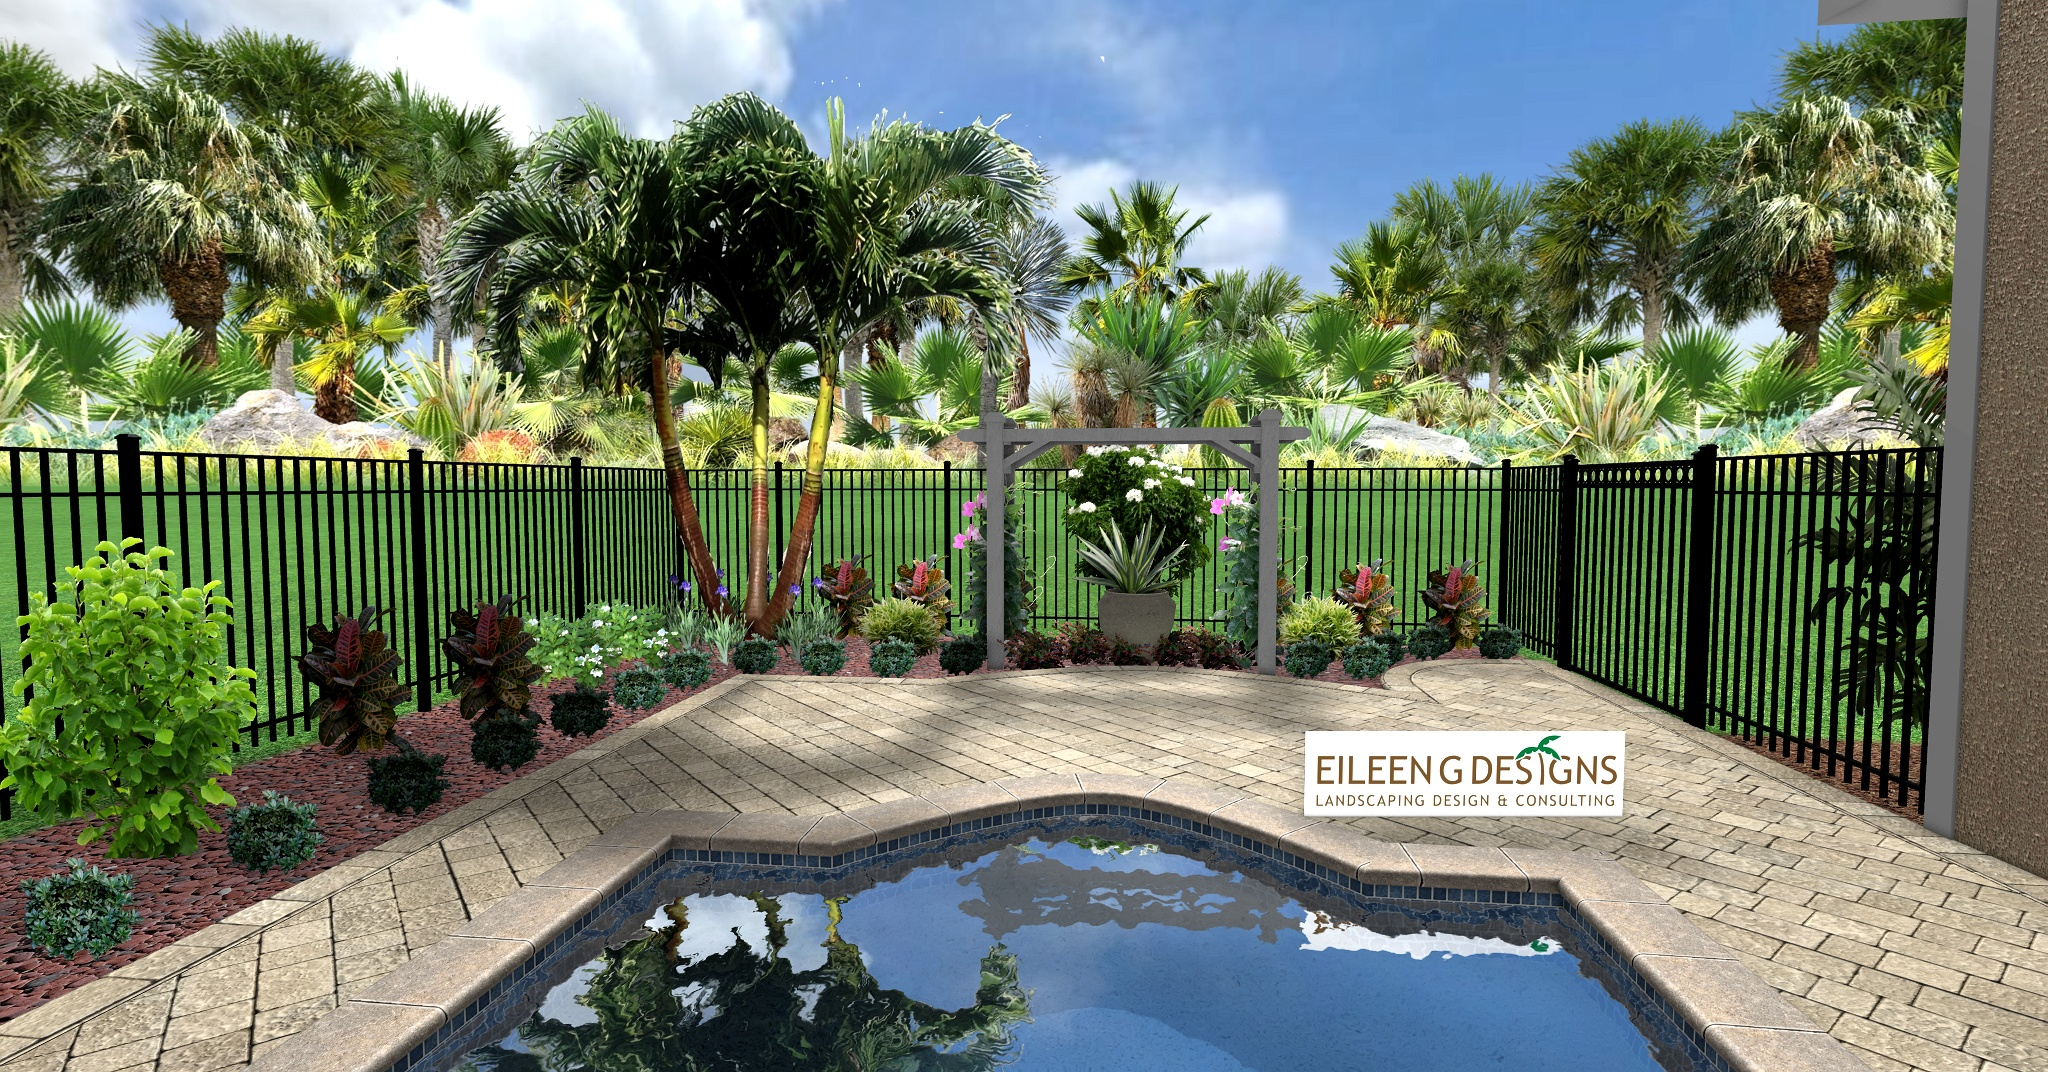 Paver pool deck and tropical landscaping for small back yard.